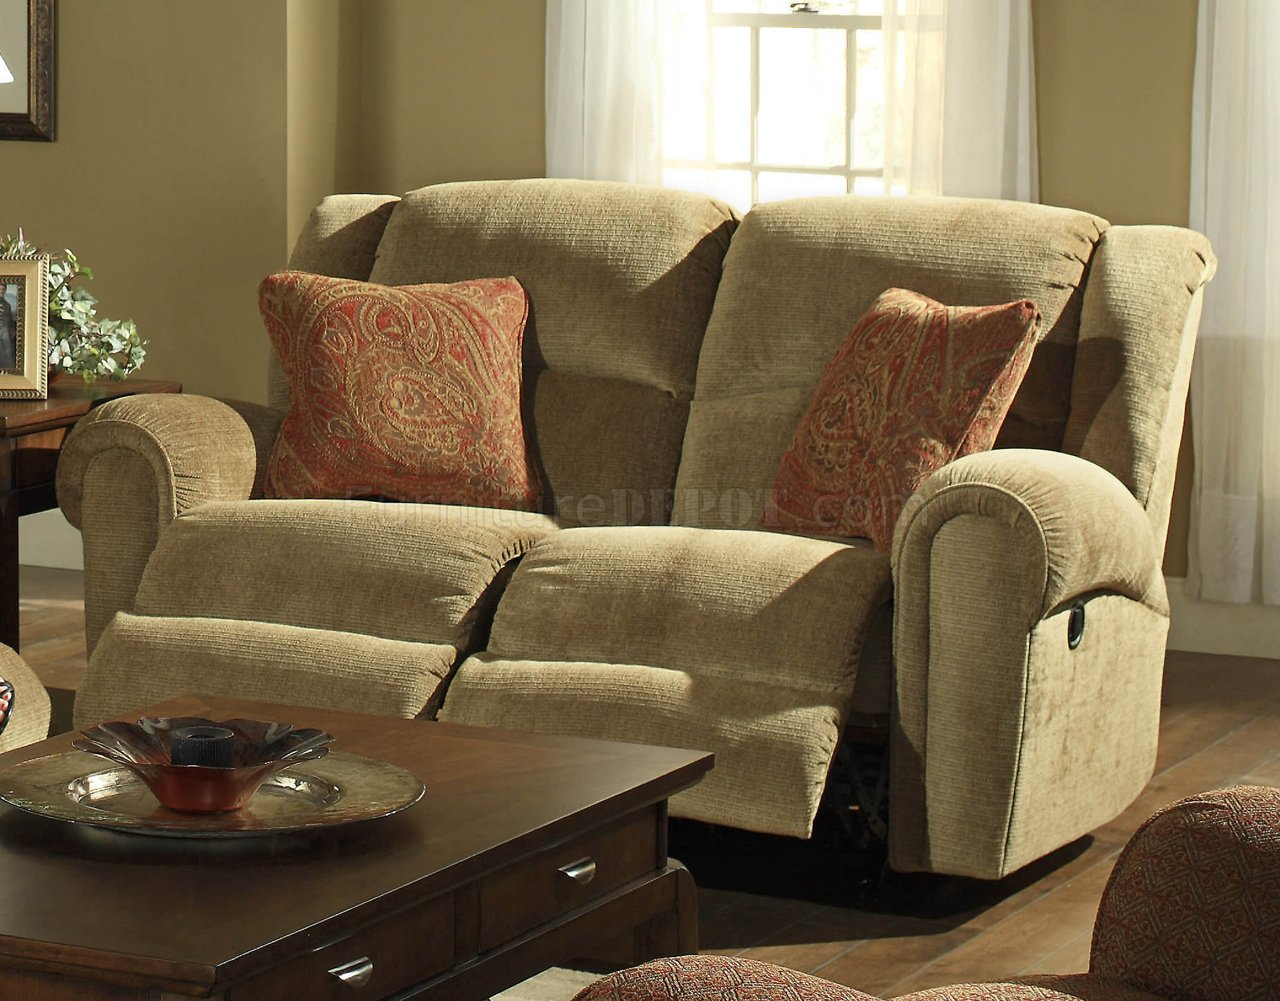 fabric sectional sofa with recliner bradington young leather recliners sofas beige suede traditional